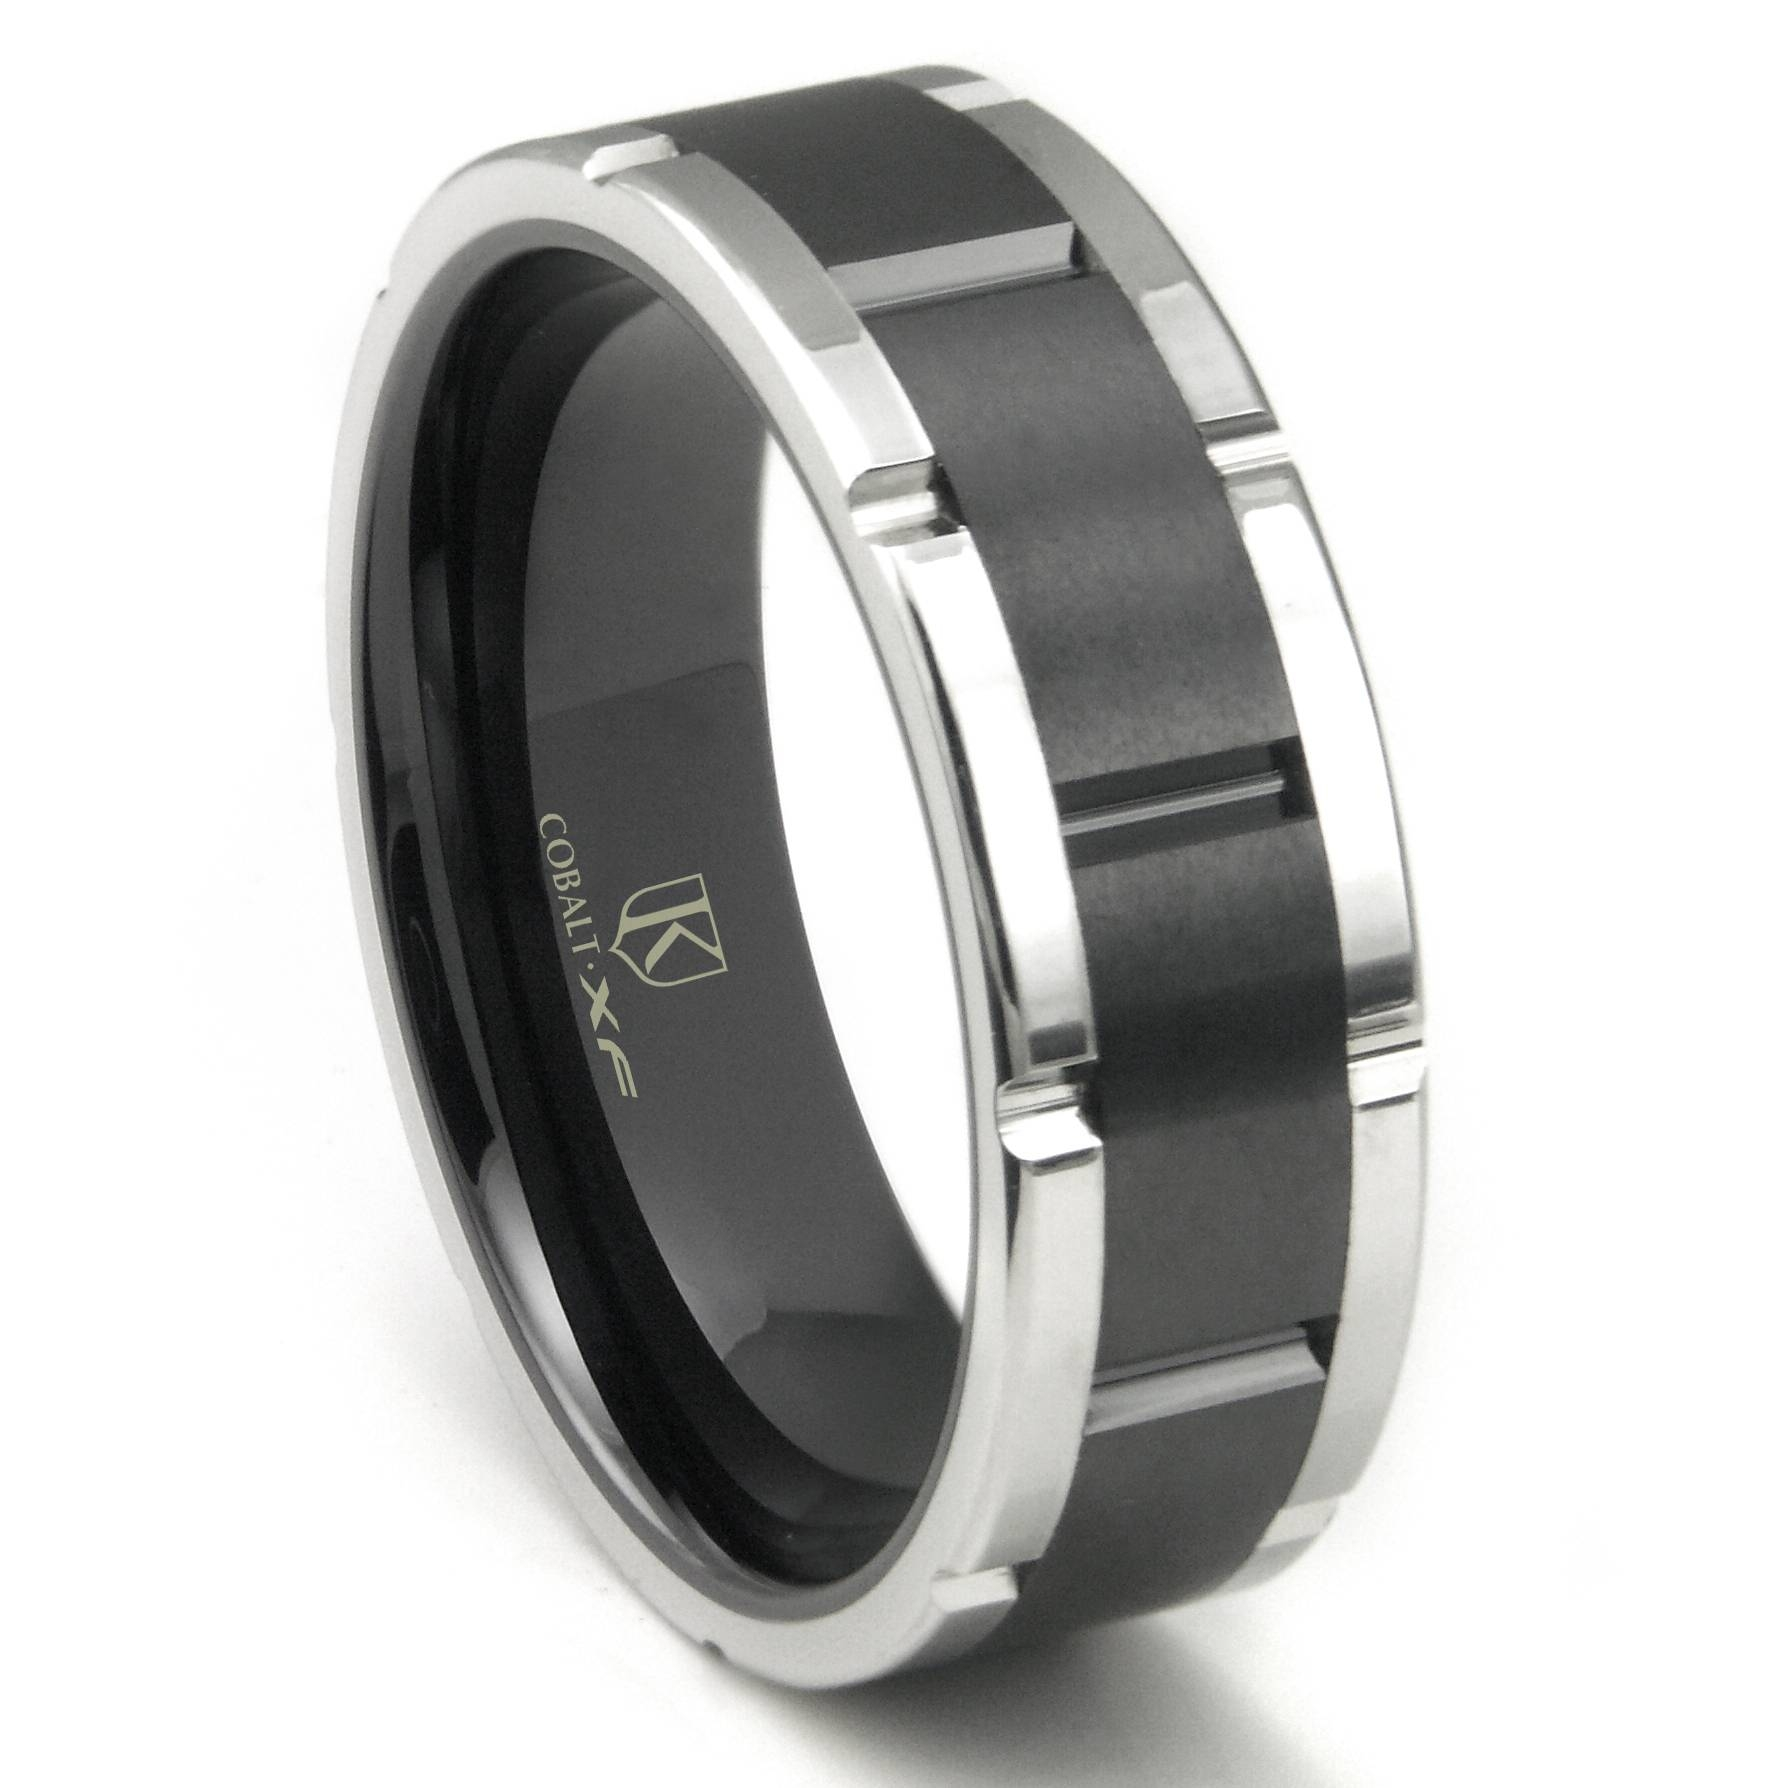 Cobalt Xf Chrome 8Mm Two Tone Matte Finish Center Wedding Band Ring Within Cobalt Wedding Rings (View 11 of 15)